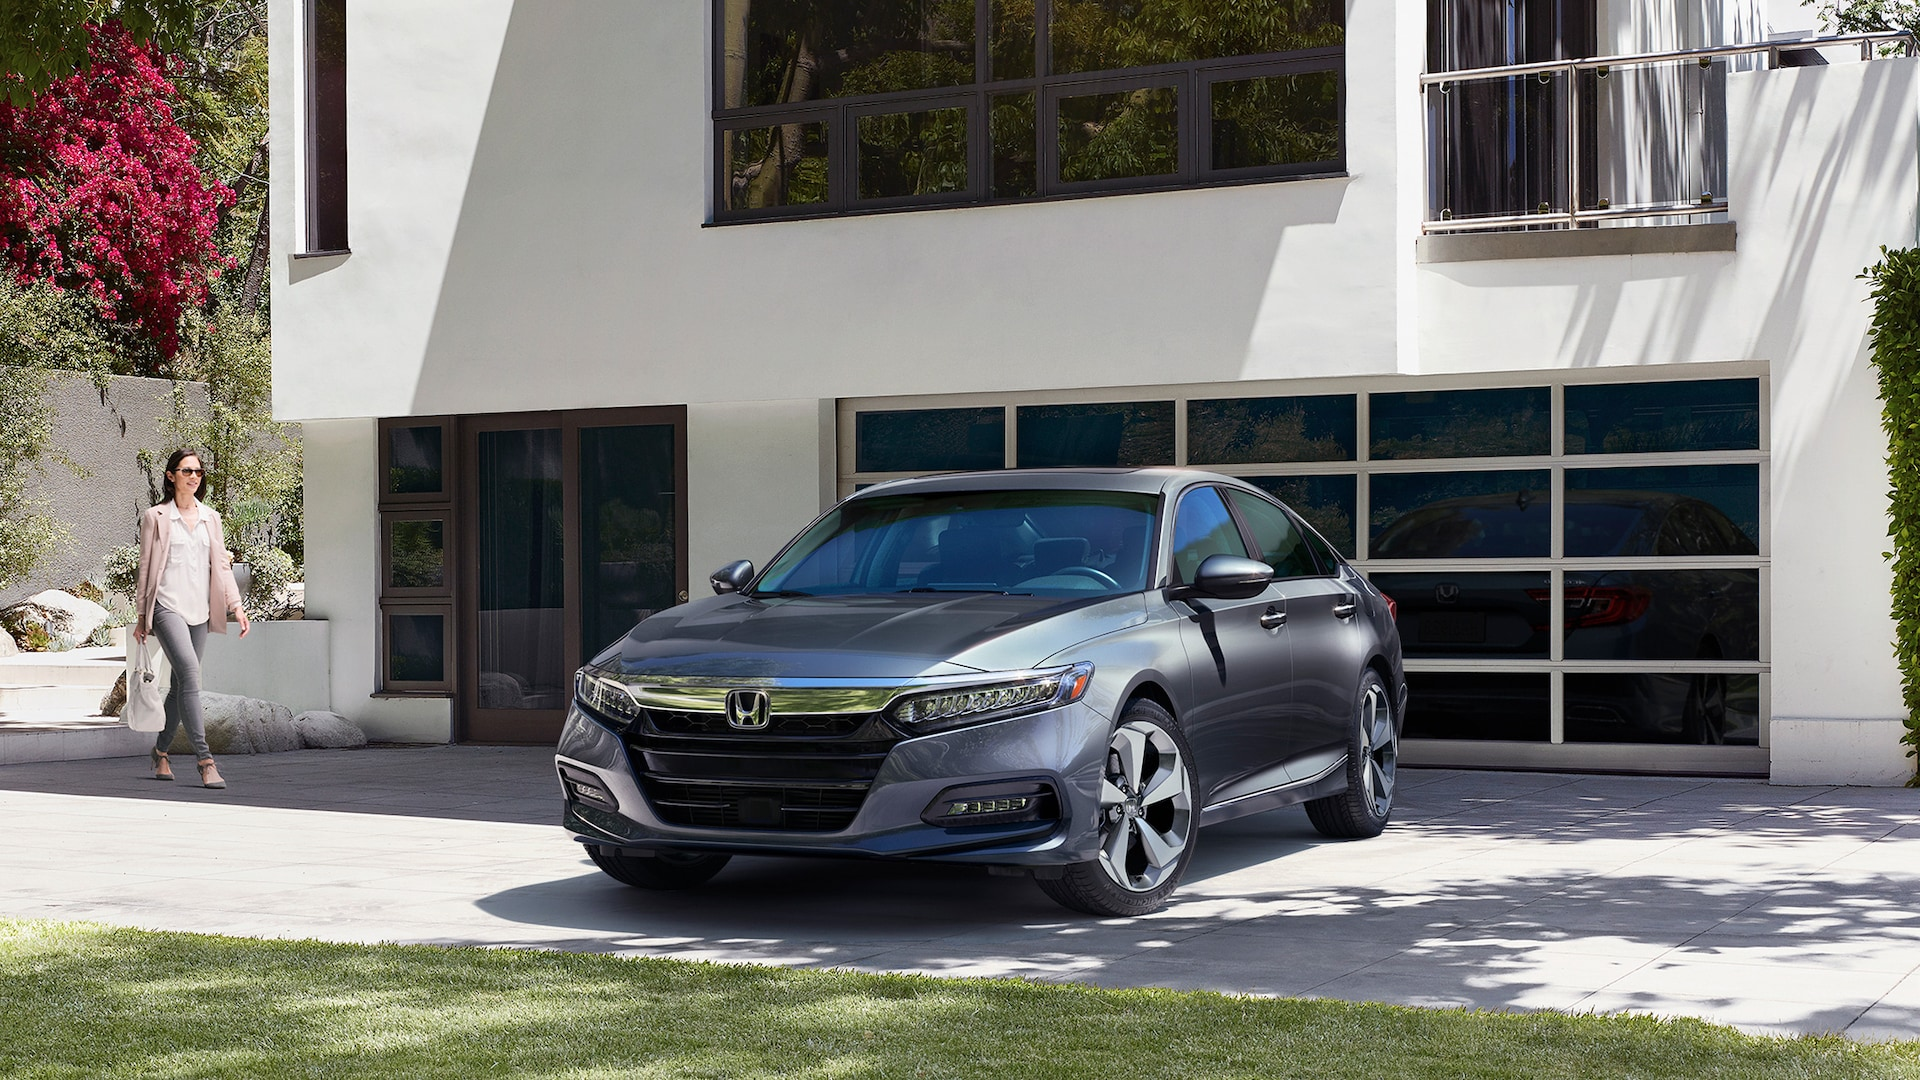 2020 Honda Accord Touring 2.0T in Modern Steel Metallic, parked in front of modern home.